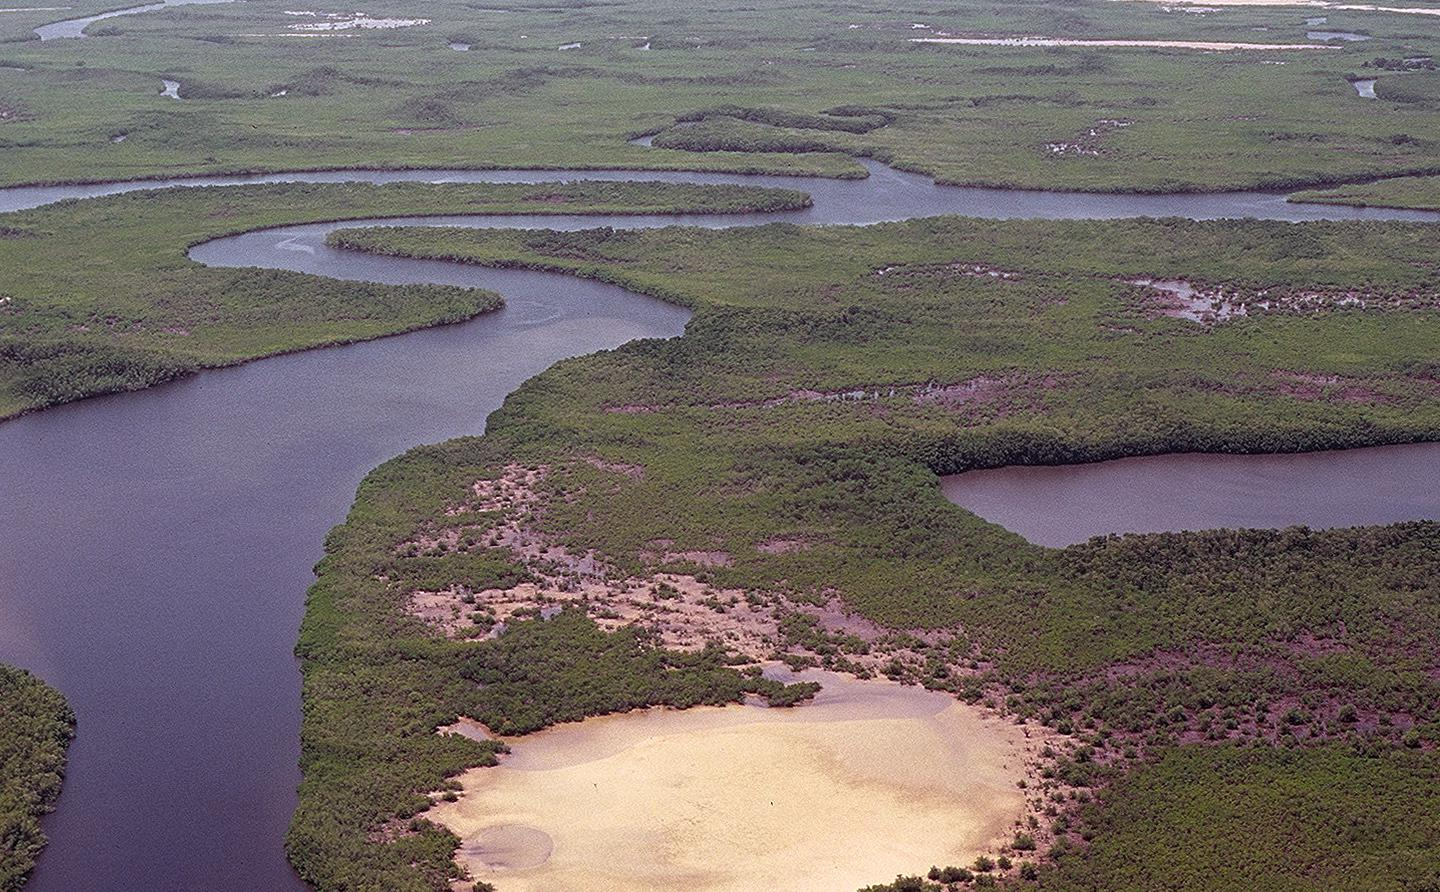 Mangroves and estuaries © Gray Tappan/USGS